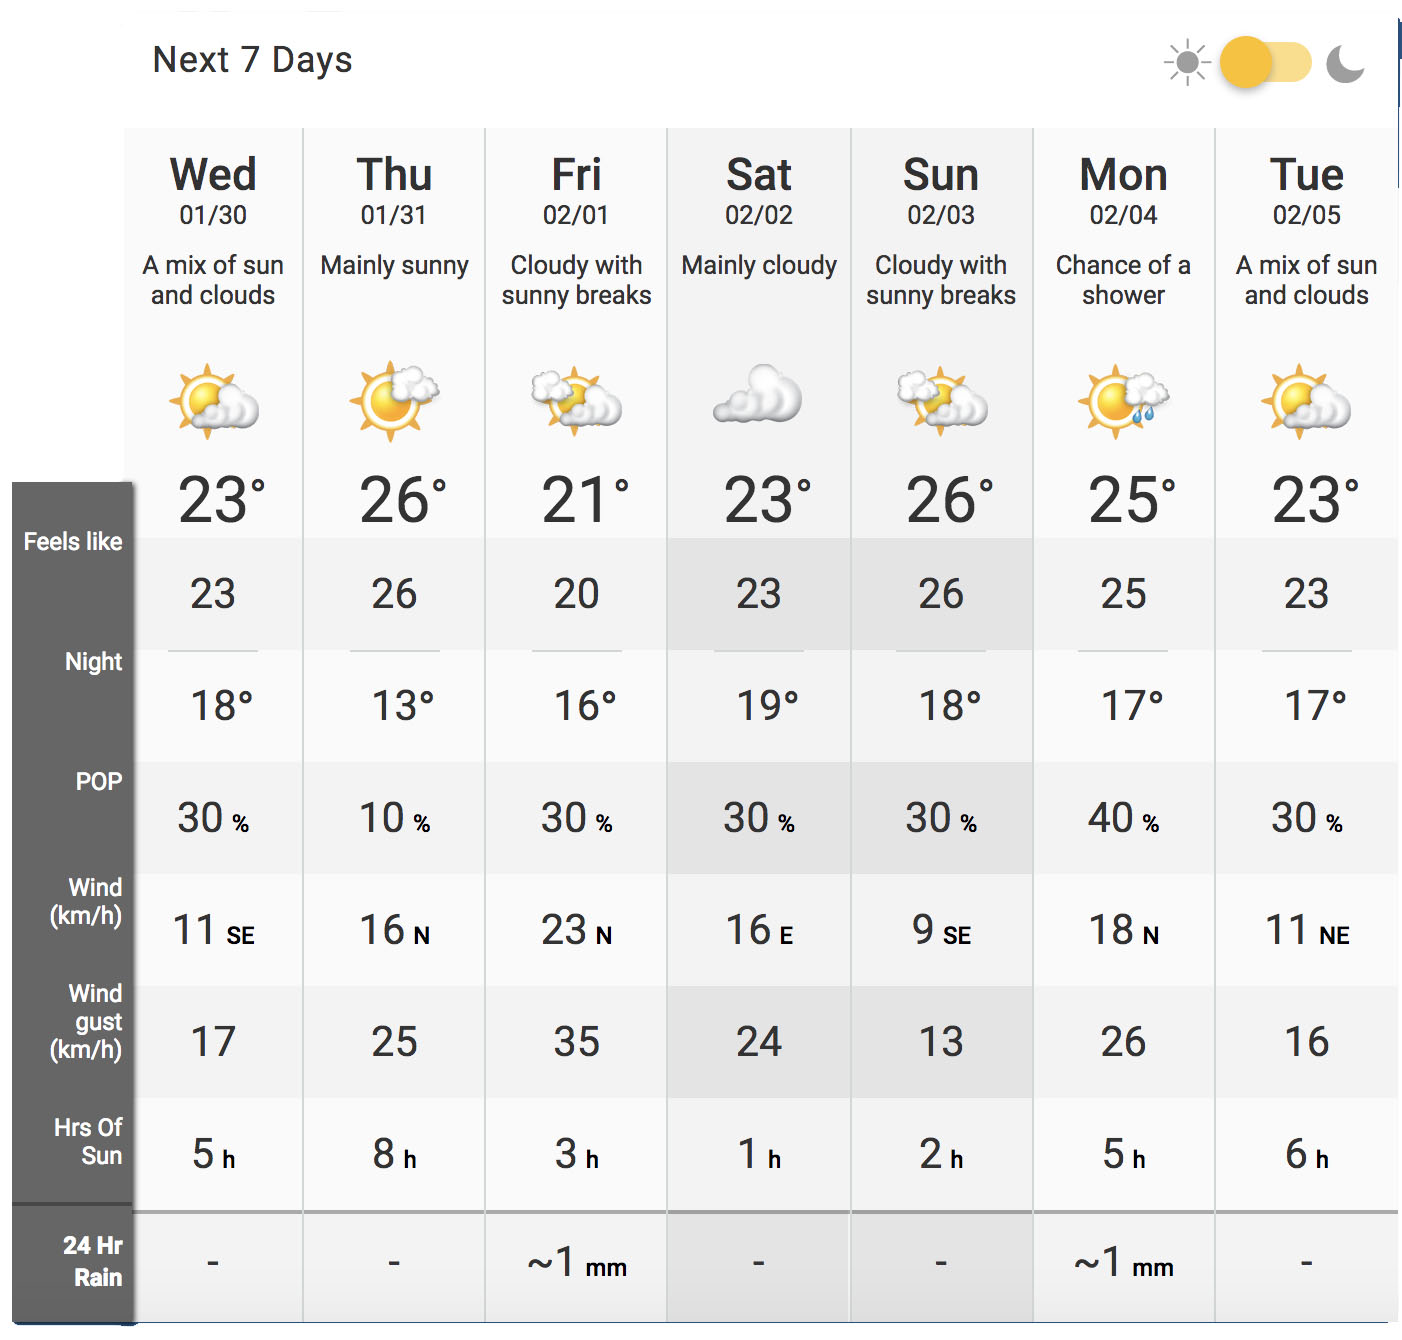 guangzhou_weather_forecast_1.30-2_.5_.jpg